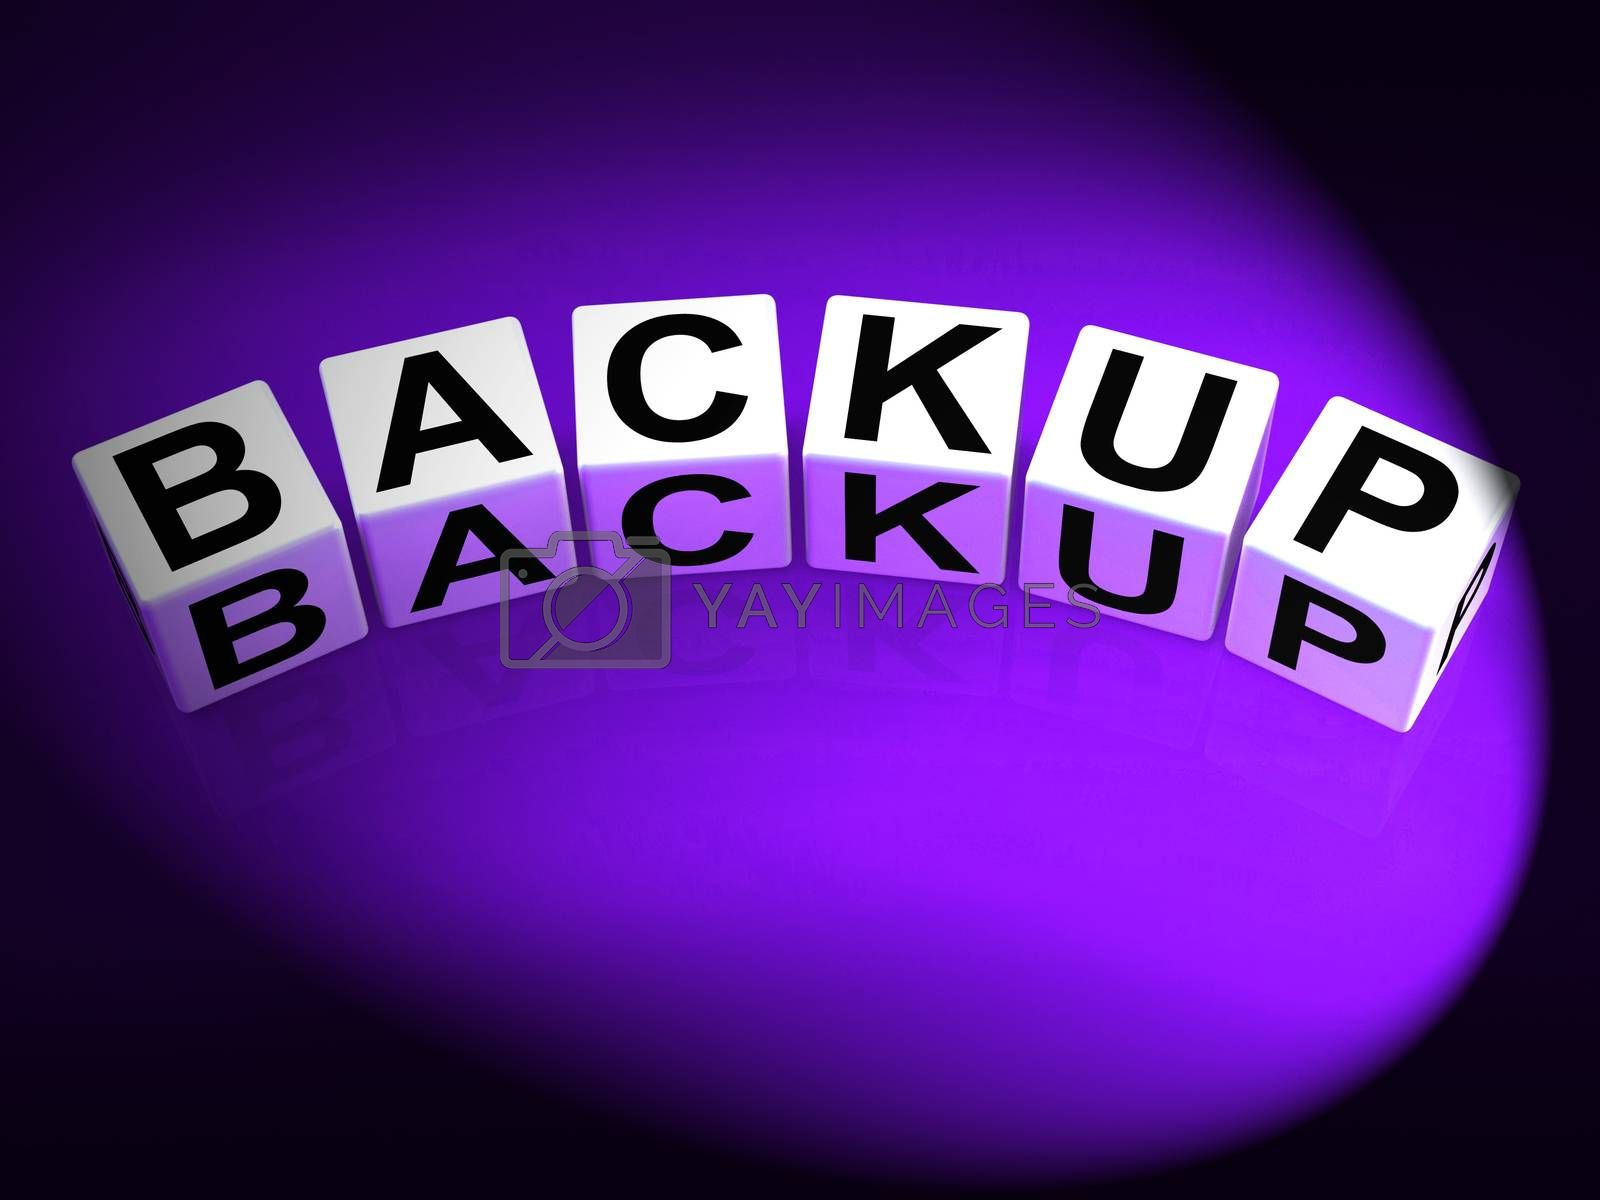 Backup Dice Mean Store Restore or Transfer Documents or Files by stuartmiles